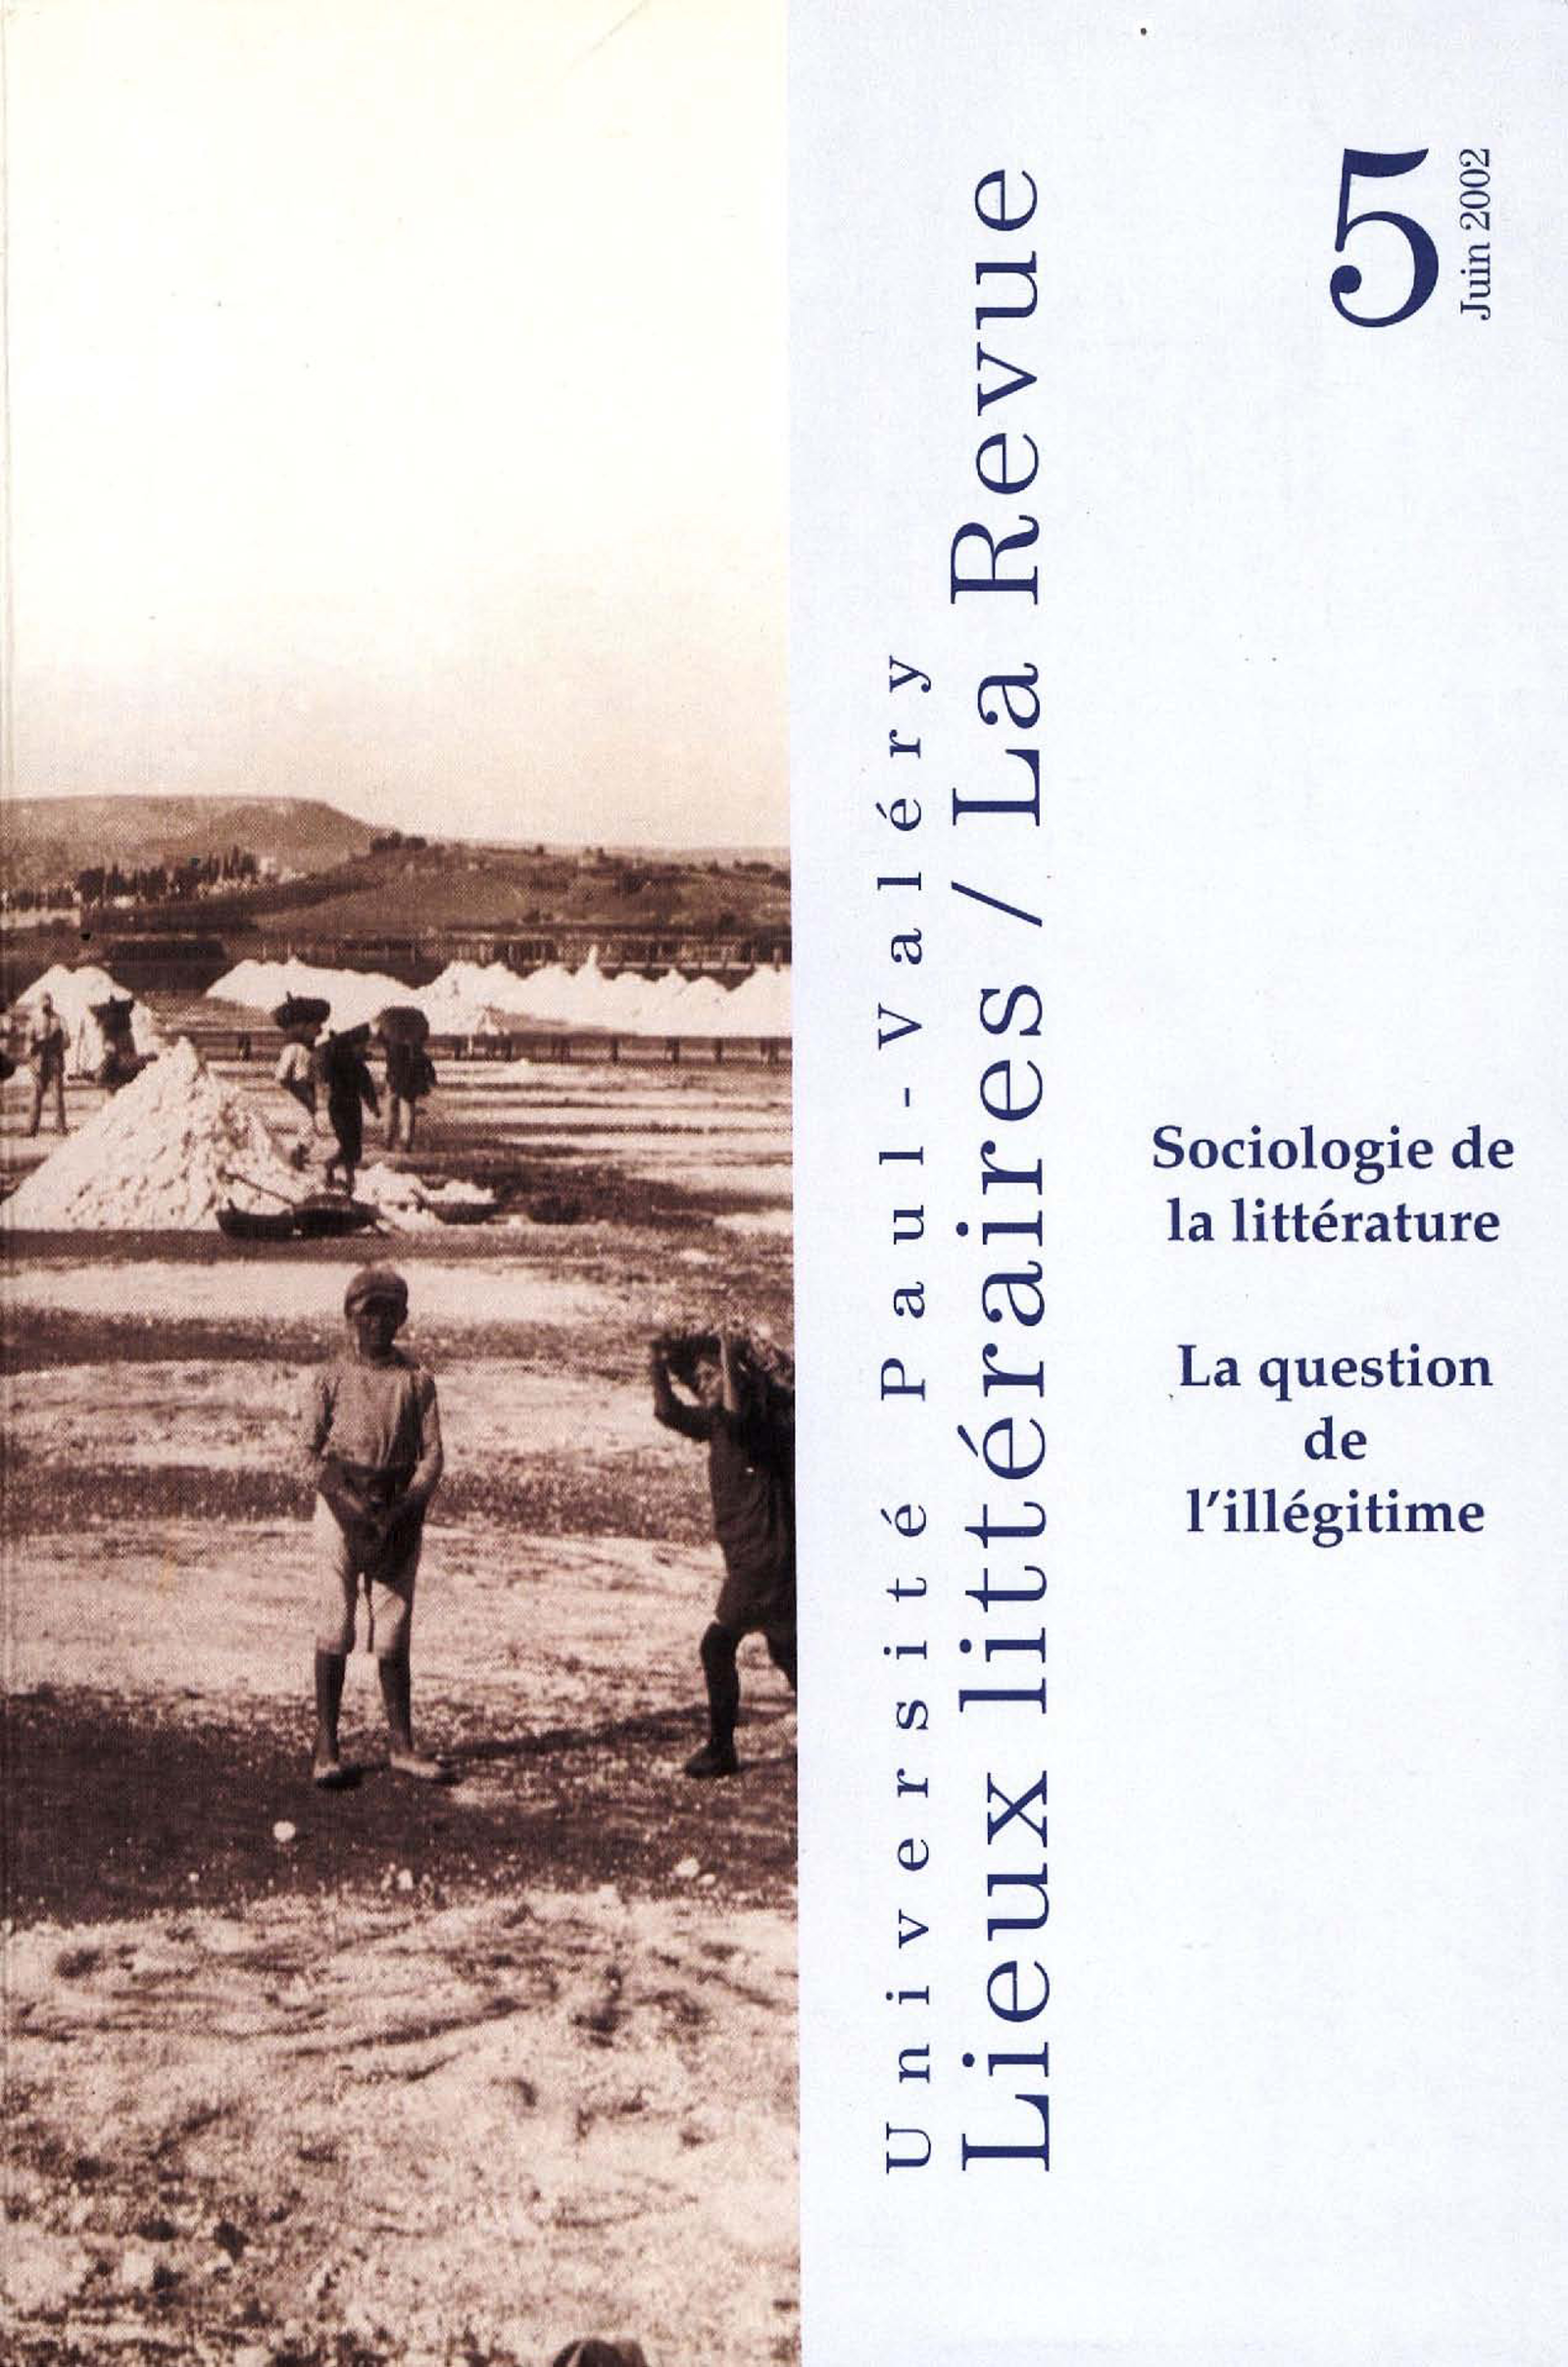 Sociologie de la littérature : la question de l'illégitime